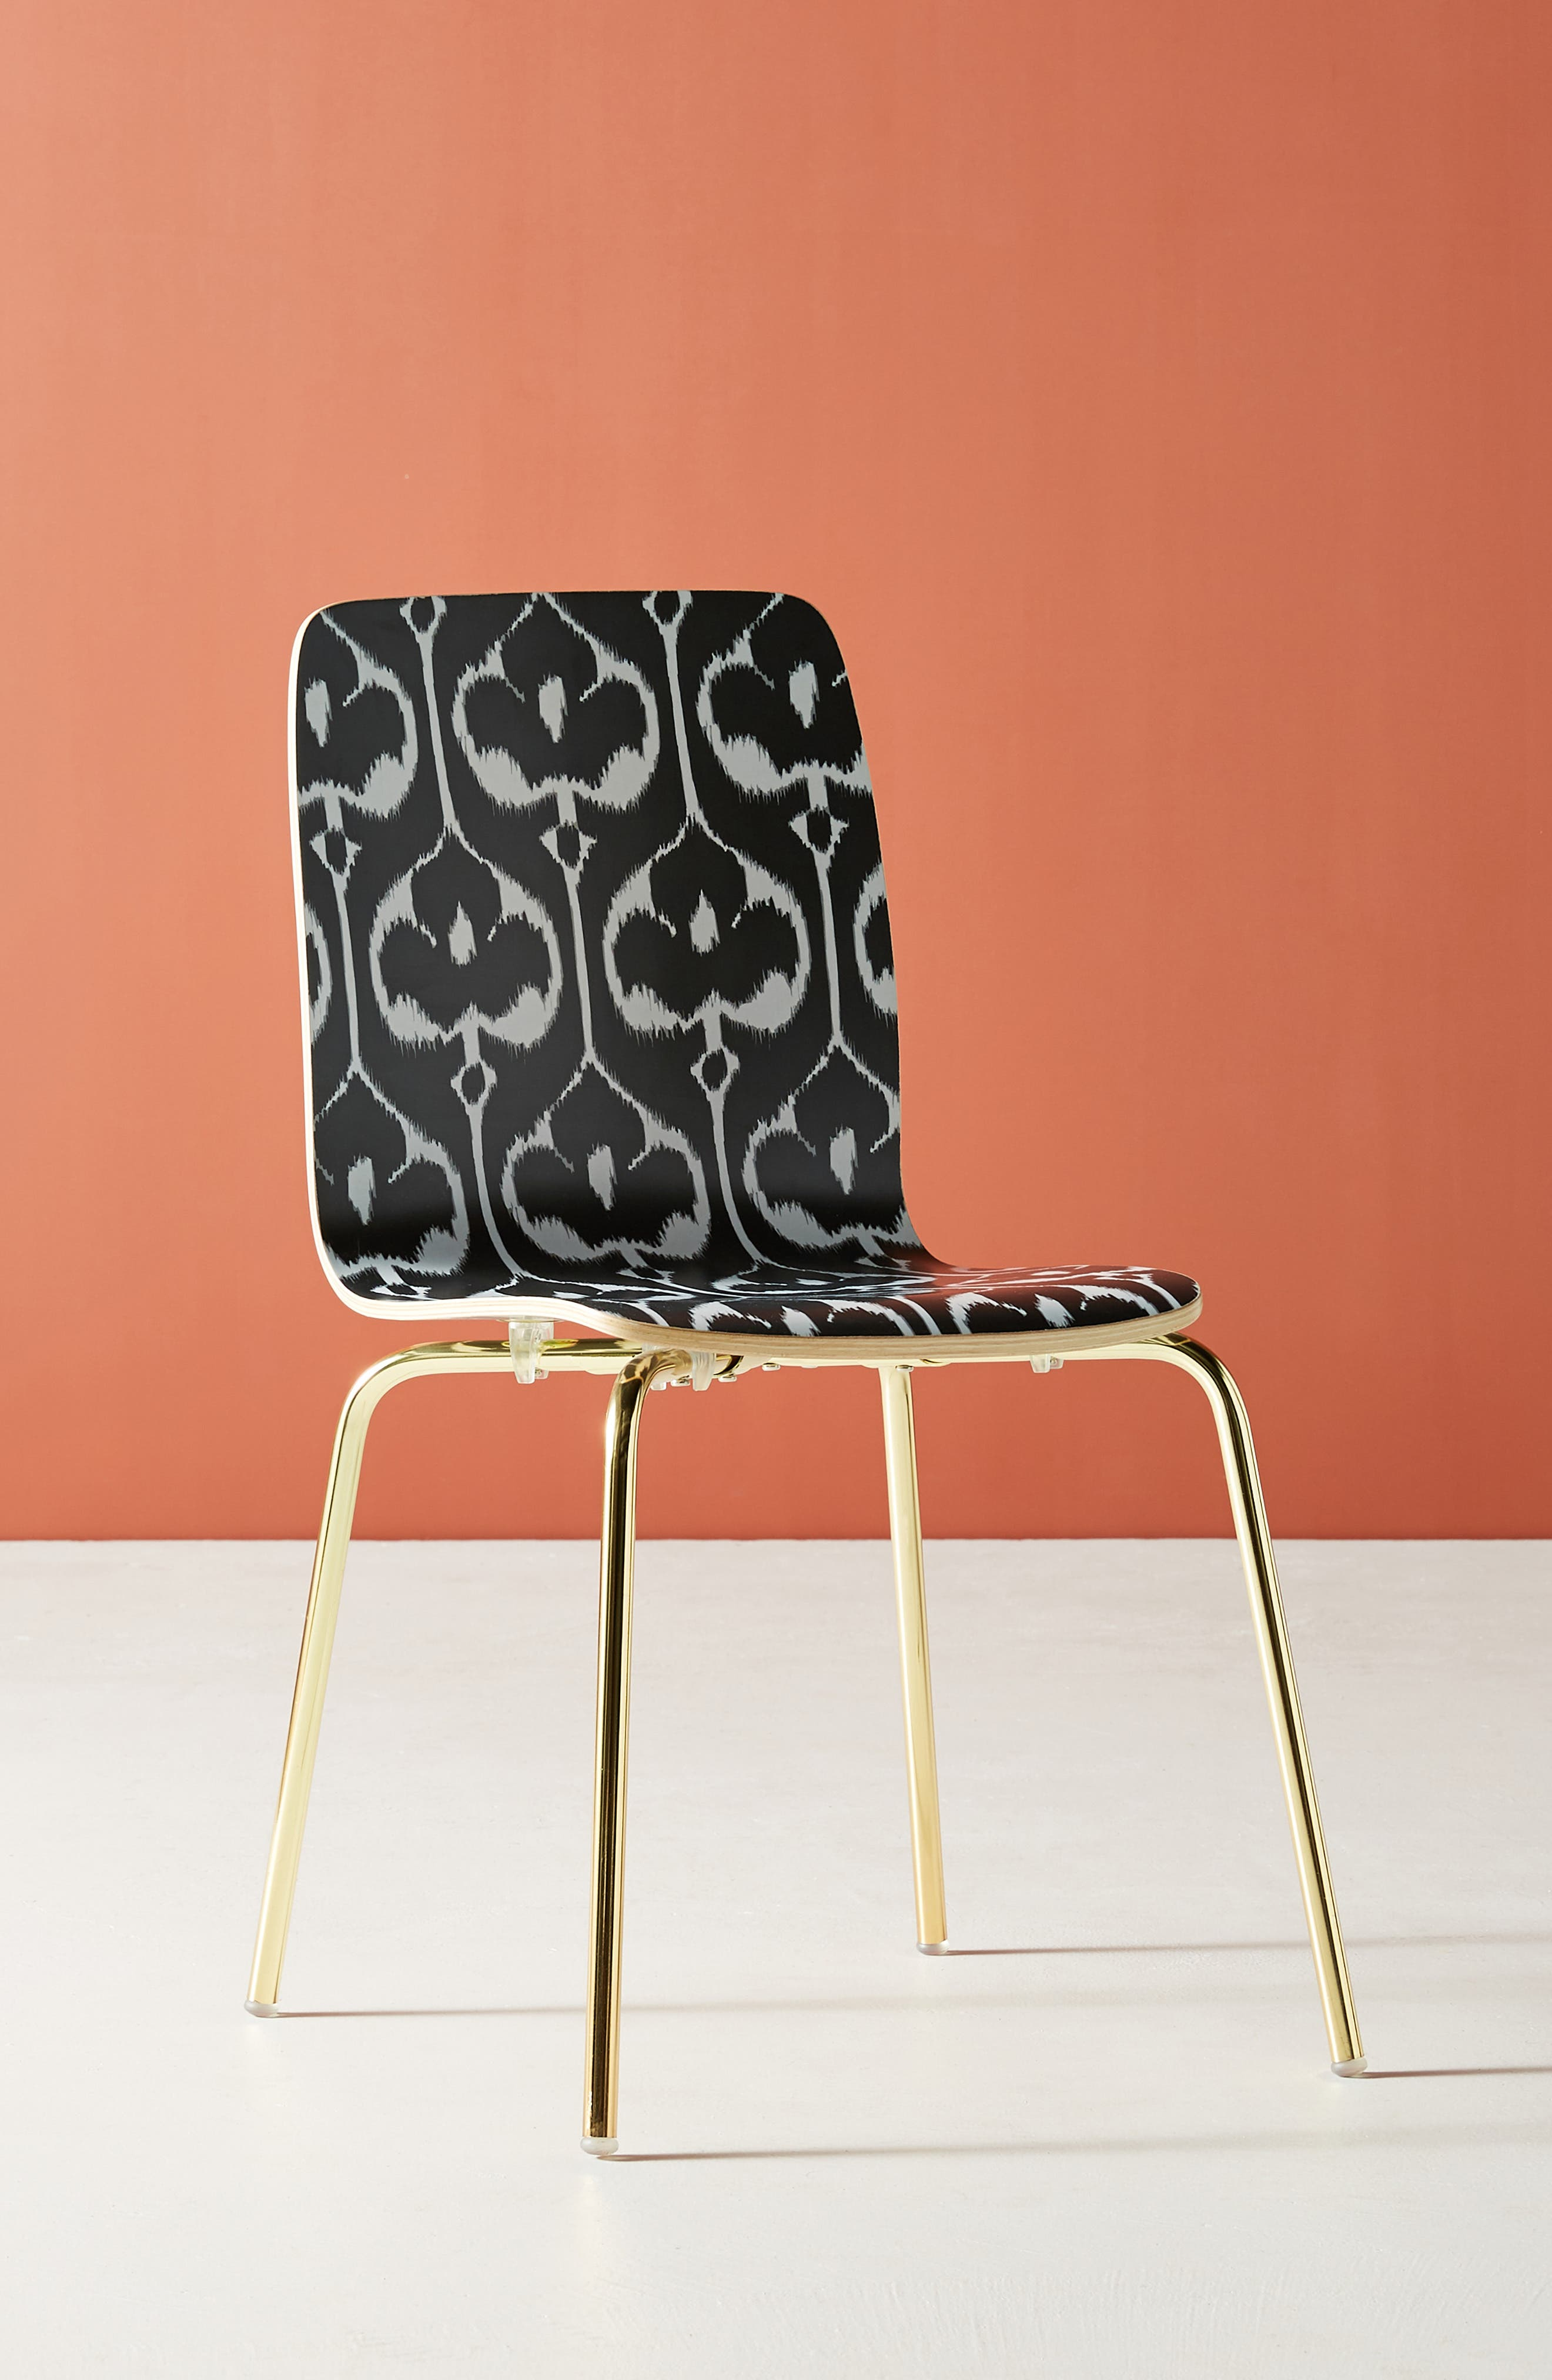 Ikat Tamsin Dining Chair,                             Alternate thumbnail 8, color,                             BLACK AND WHITE